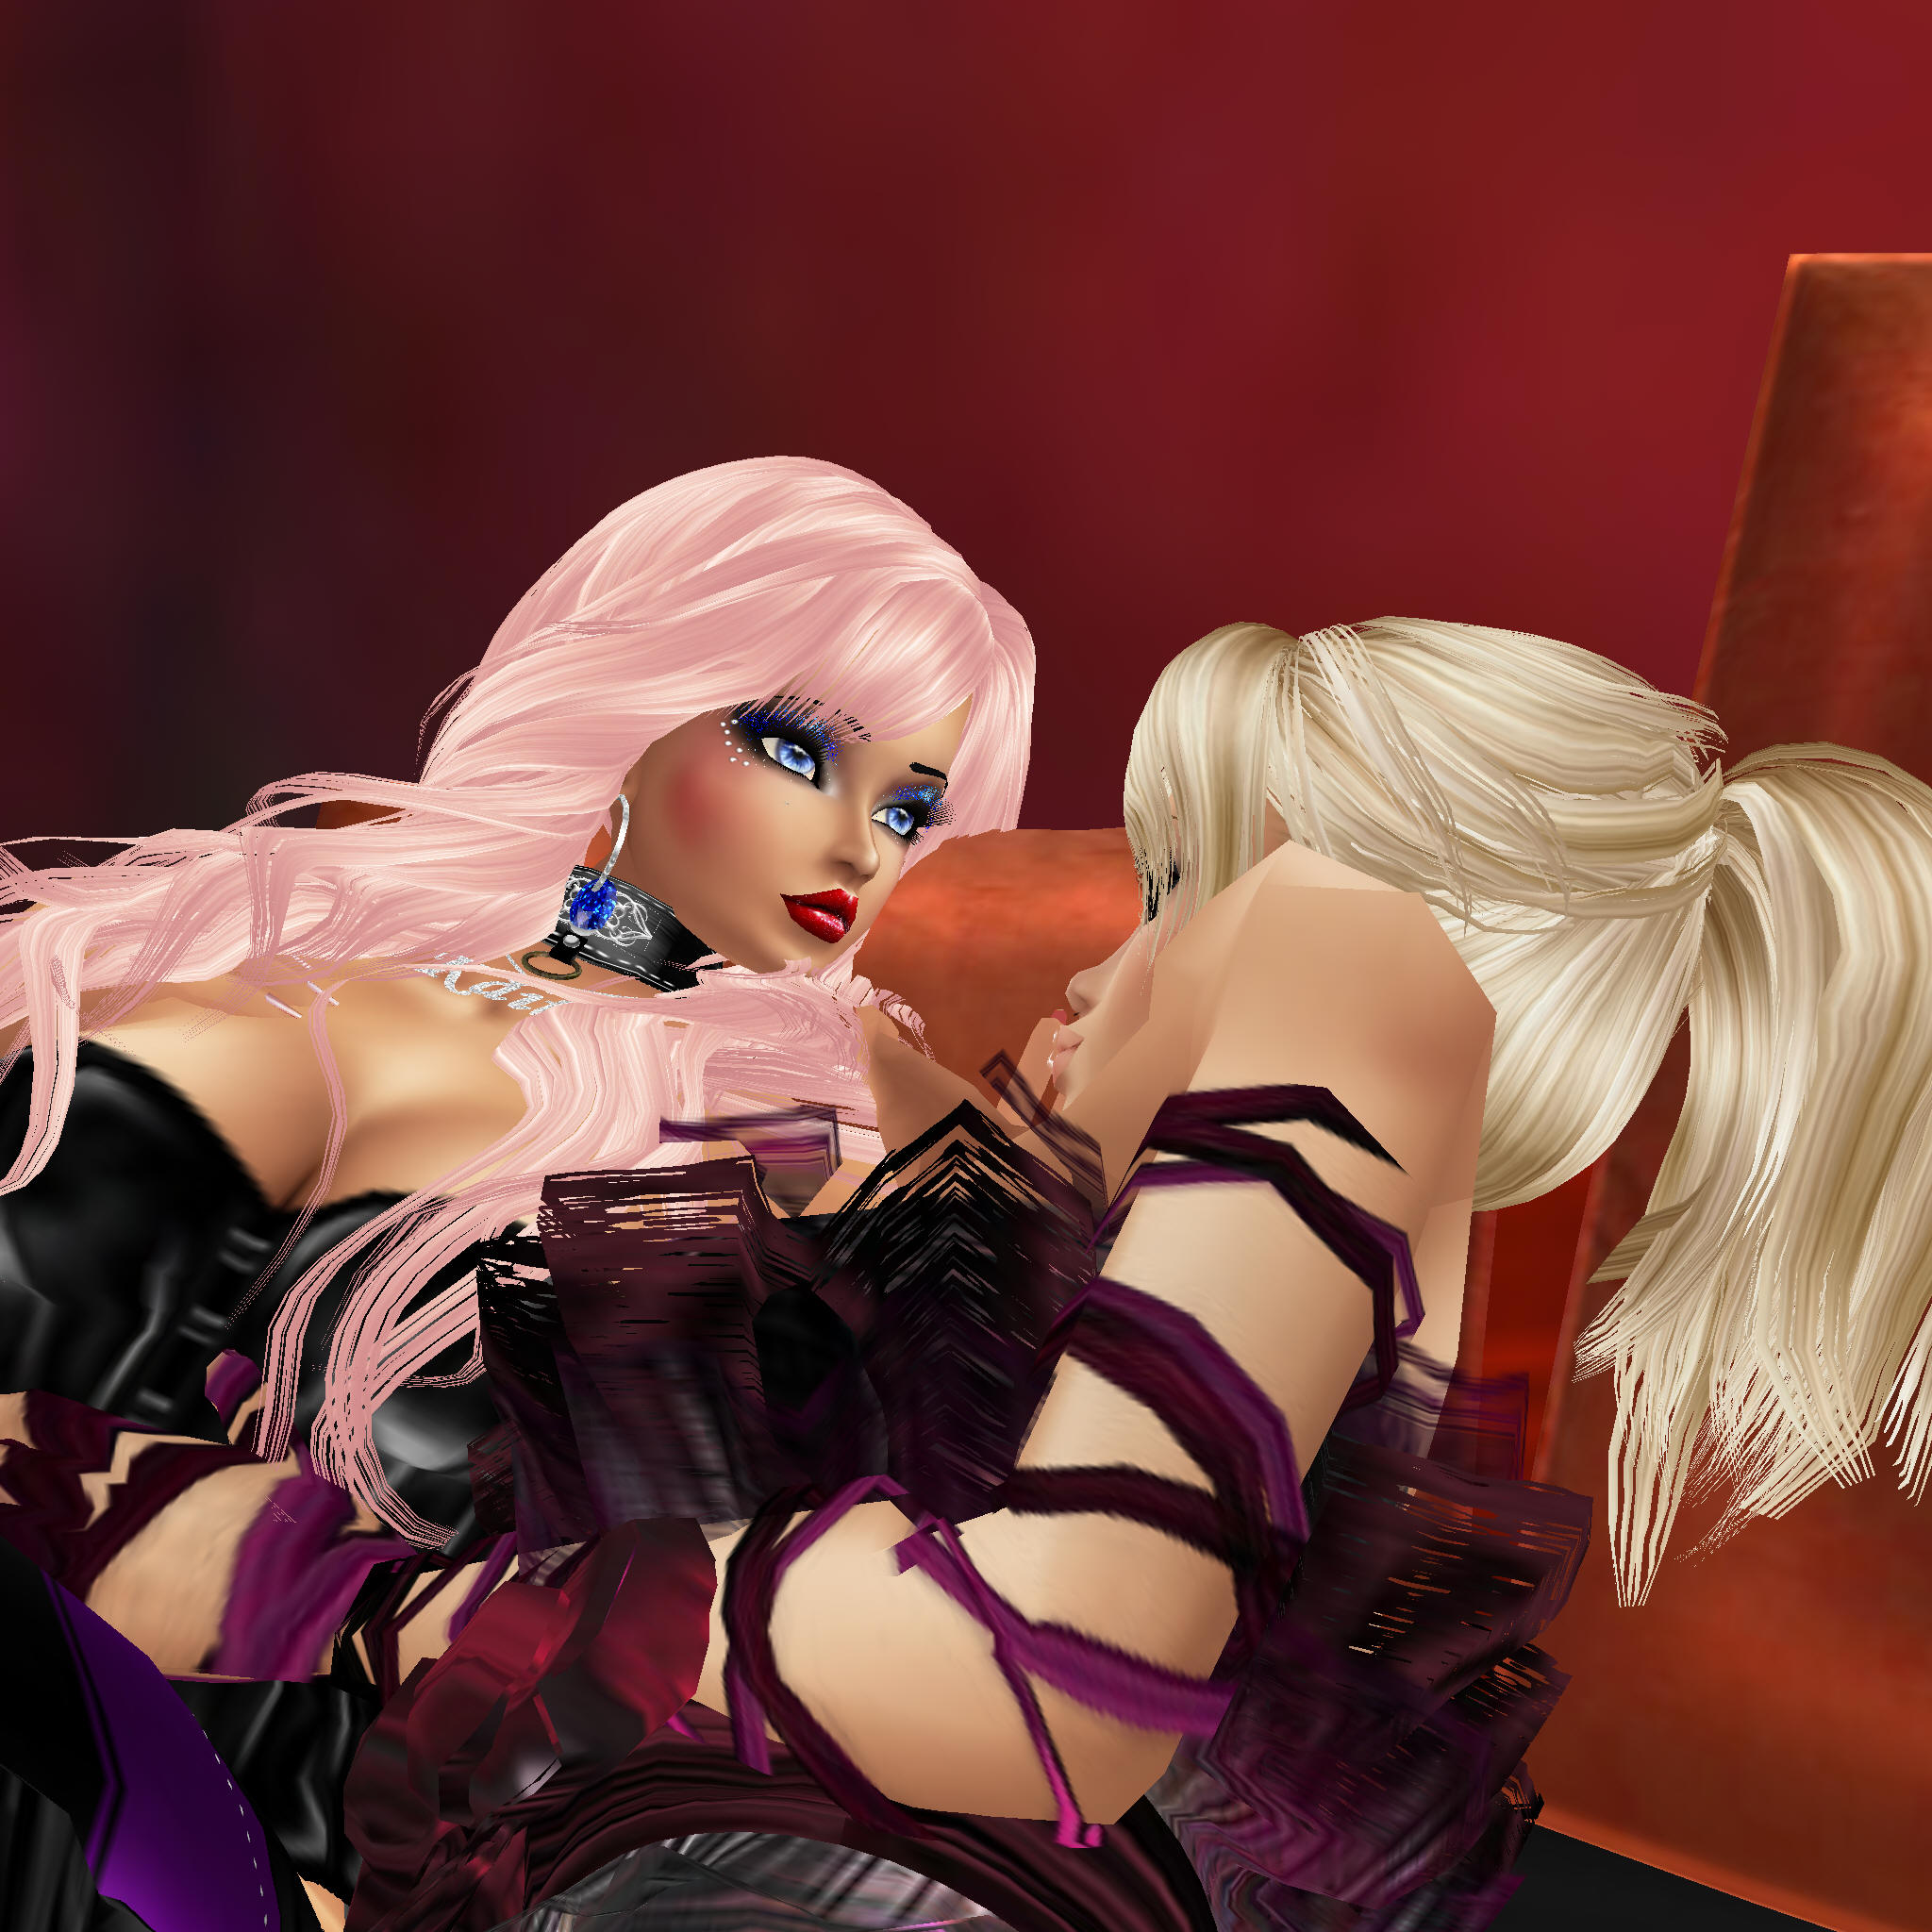 So IMVU sex isn't real but the person on the other side of the keyboard is ...